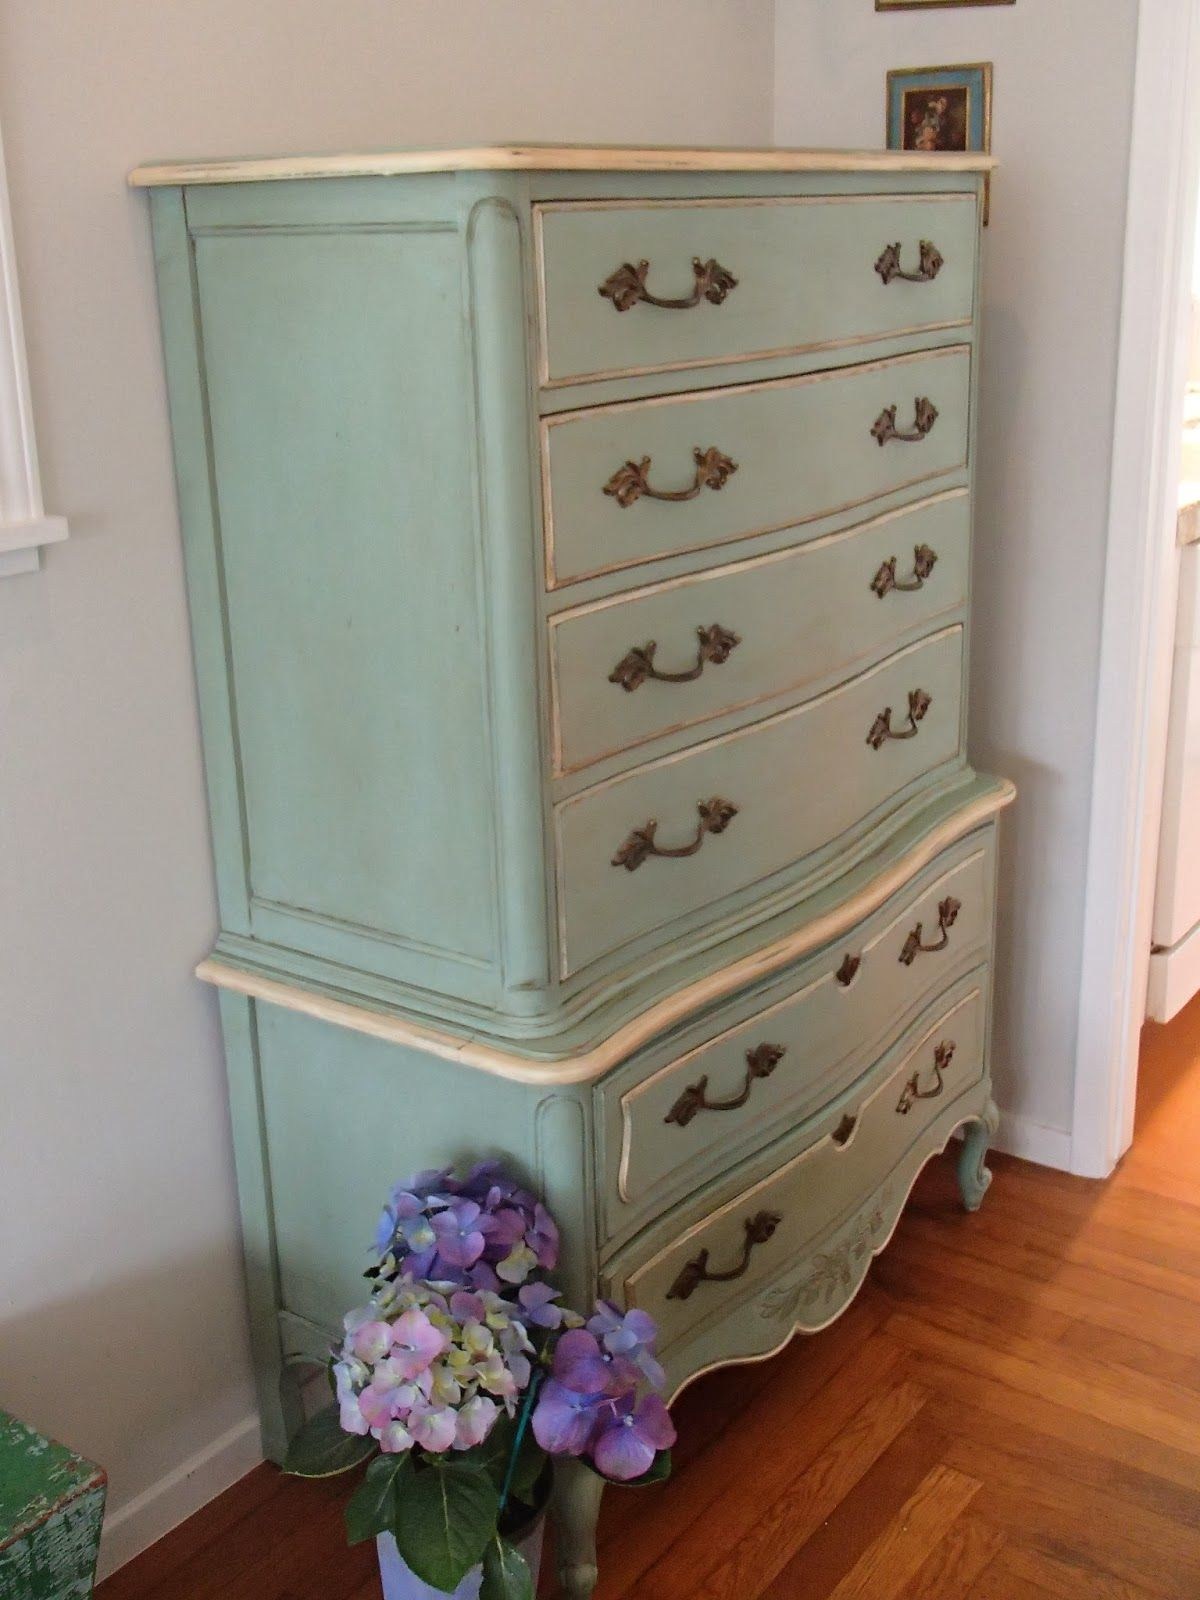 d d s cottage and design chest on chest french provincial dresser rh pinterest com